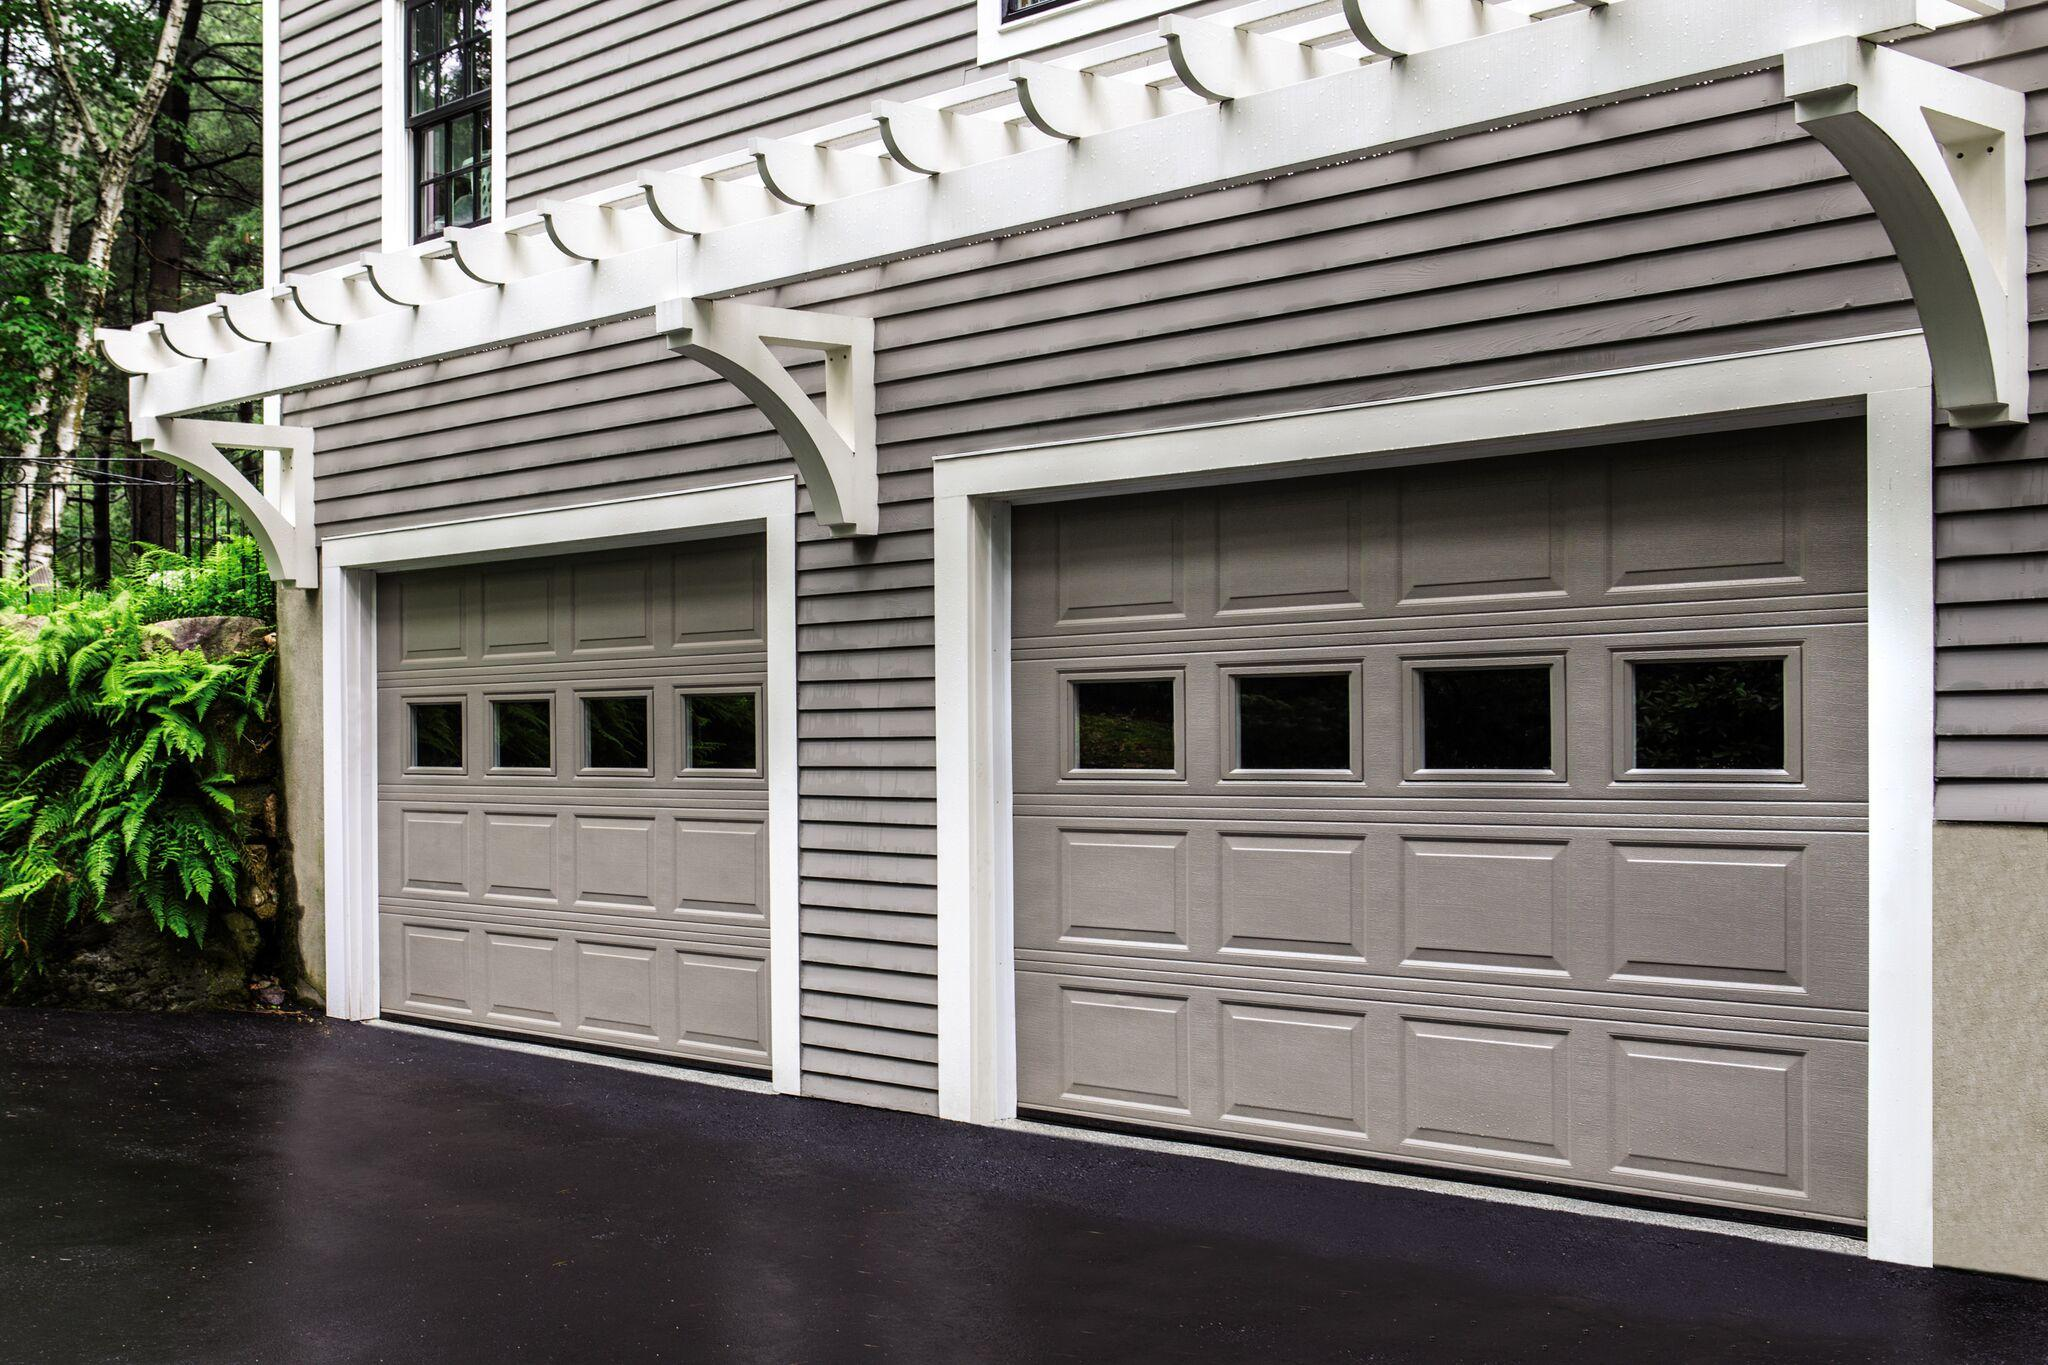 pinch-resistant wayne dalton garage door panels